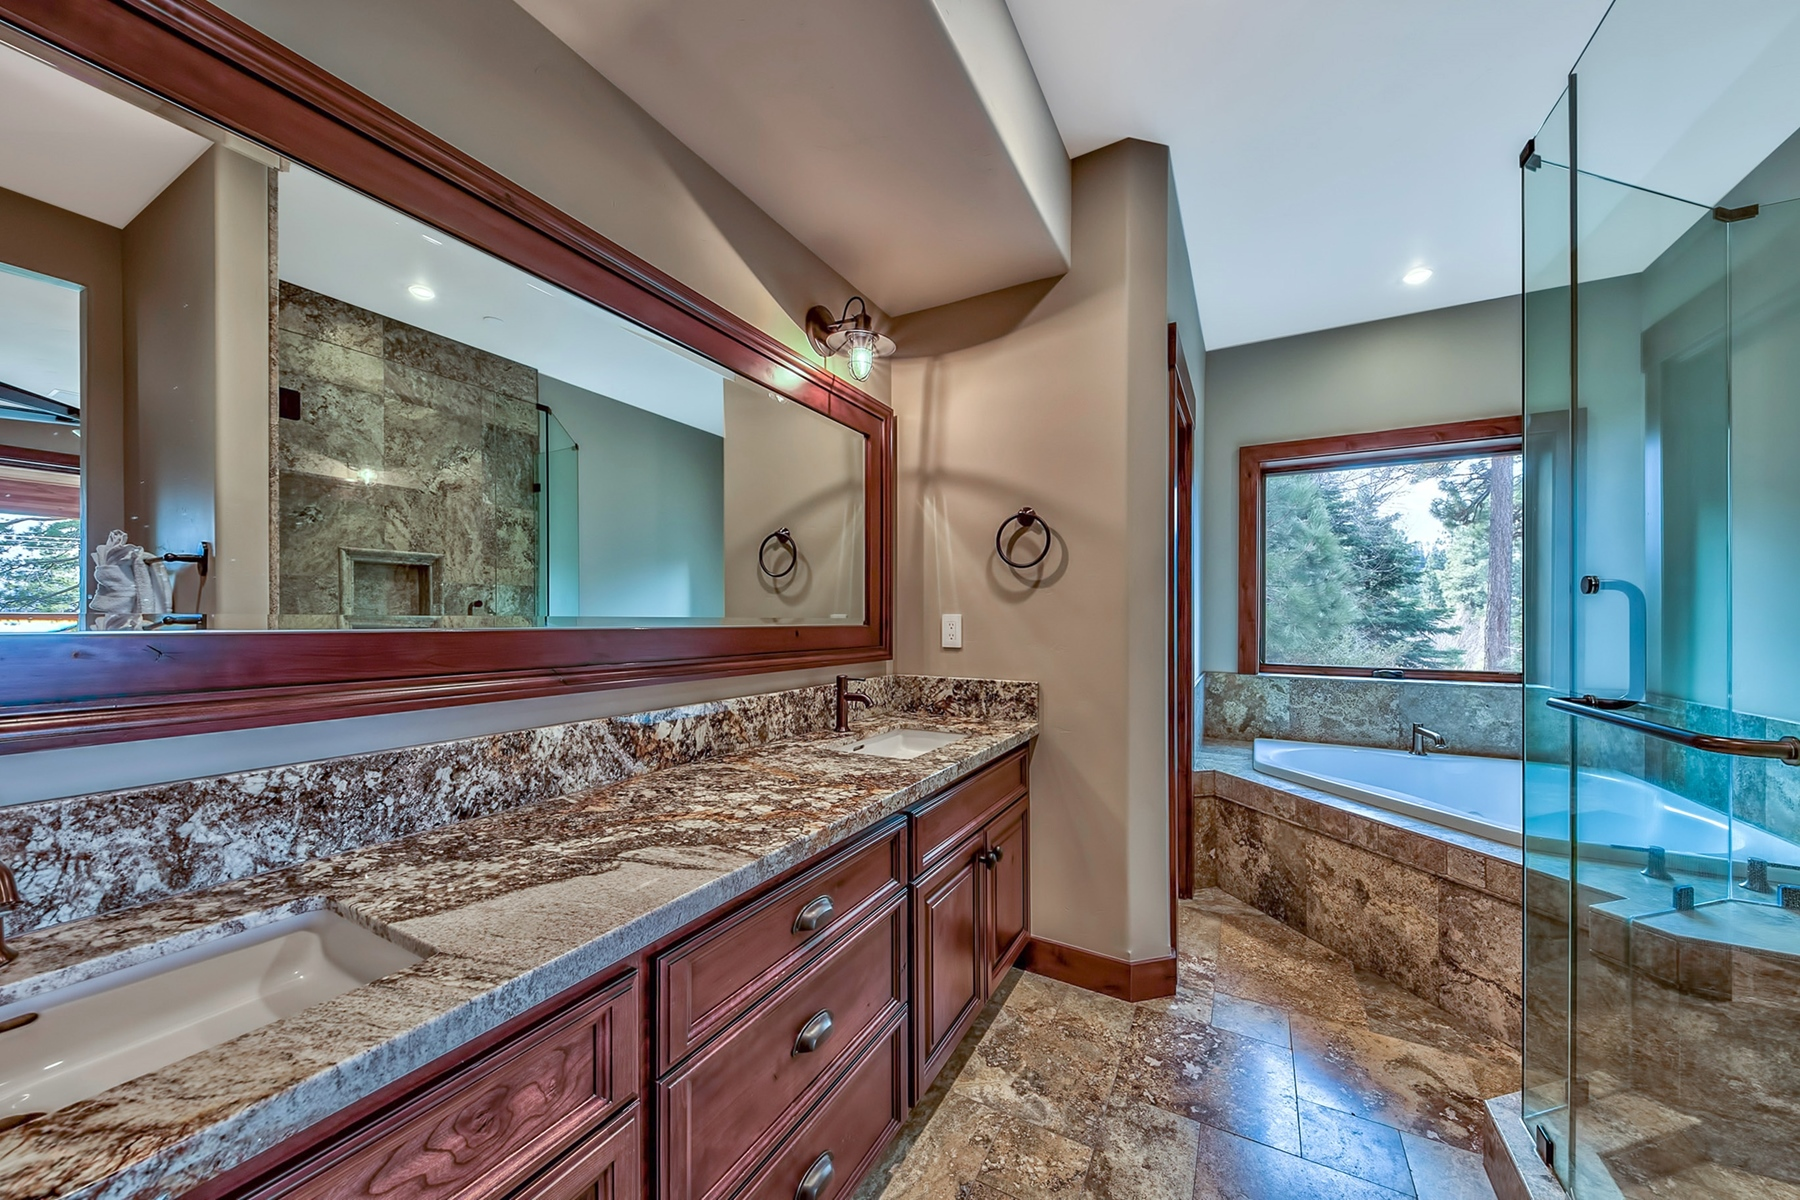 Additional photo for property listing at 3914 Saddle Road South Lake Tahoe, CA 96150 3914 Saddle Road South Lake Tahoe, California 96150 United States